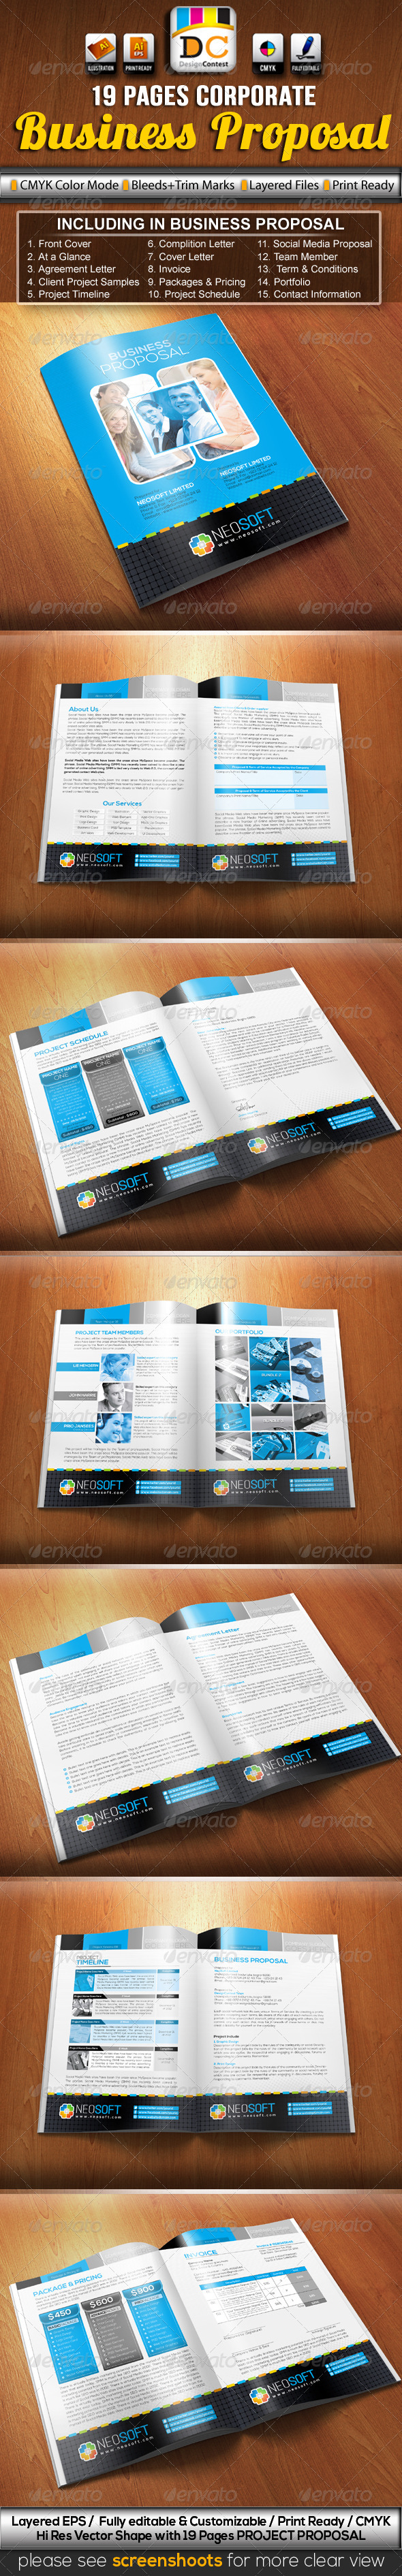 NeoSoft Business/Project Proposal - Proposals & Invoices Stationery